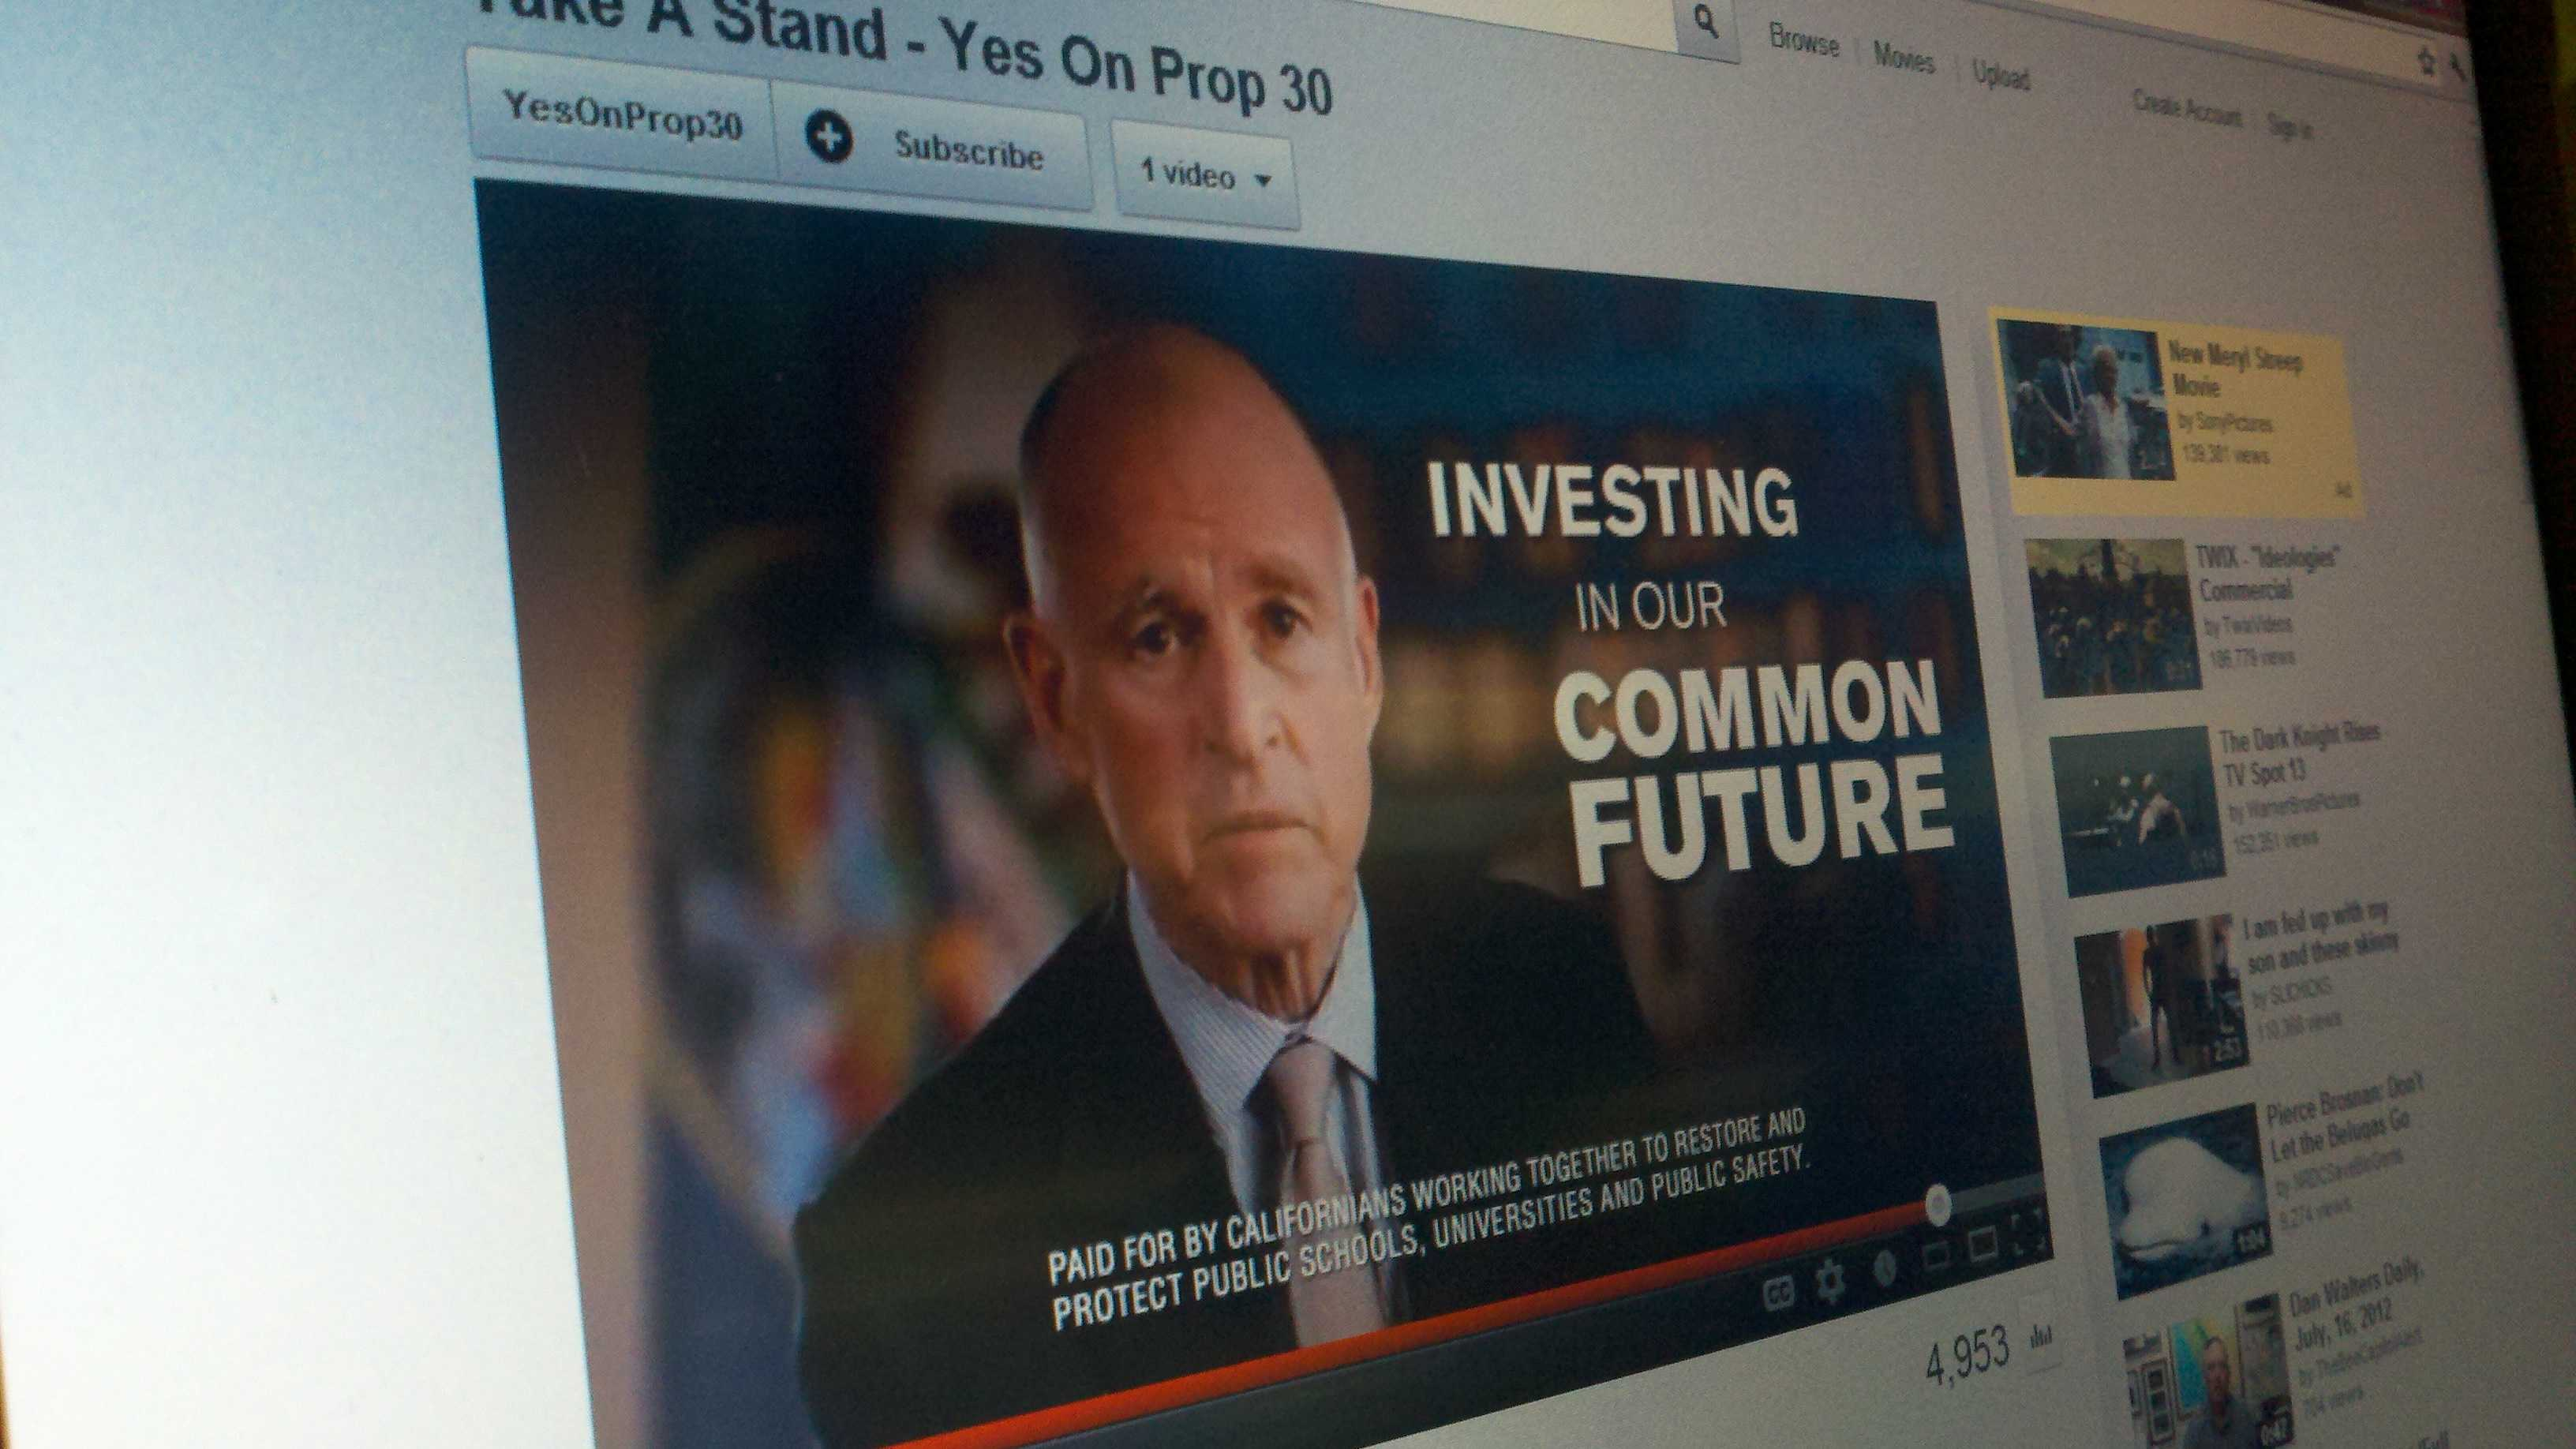 Gov. Jerry Brown appears in an online advertisement in support of Proposition 30.